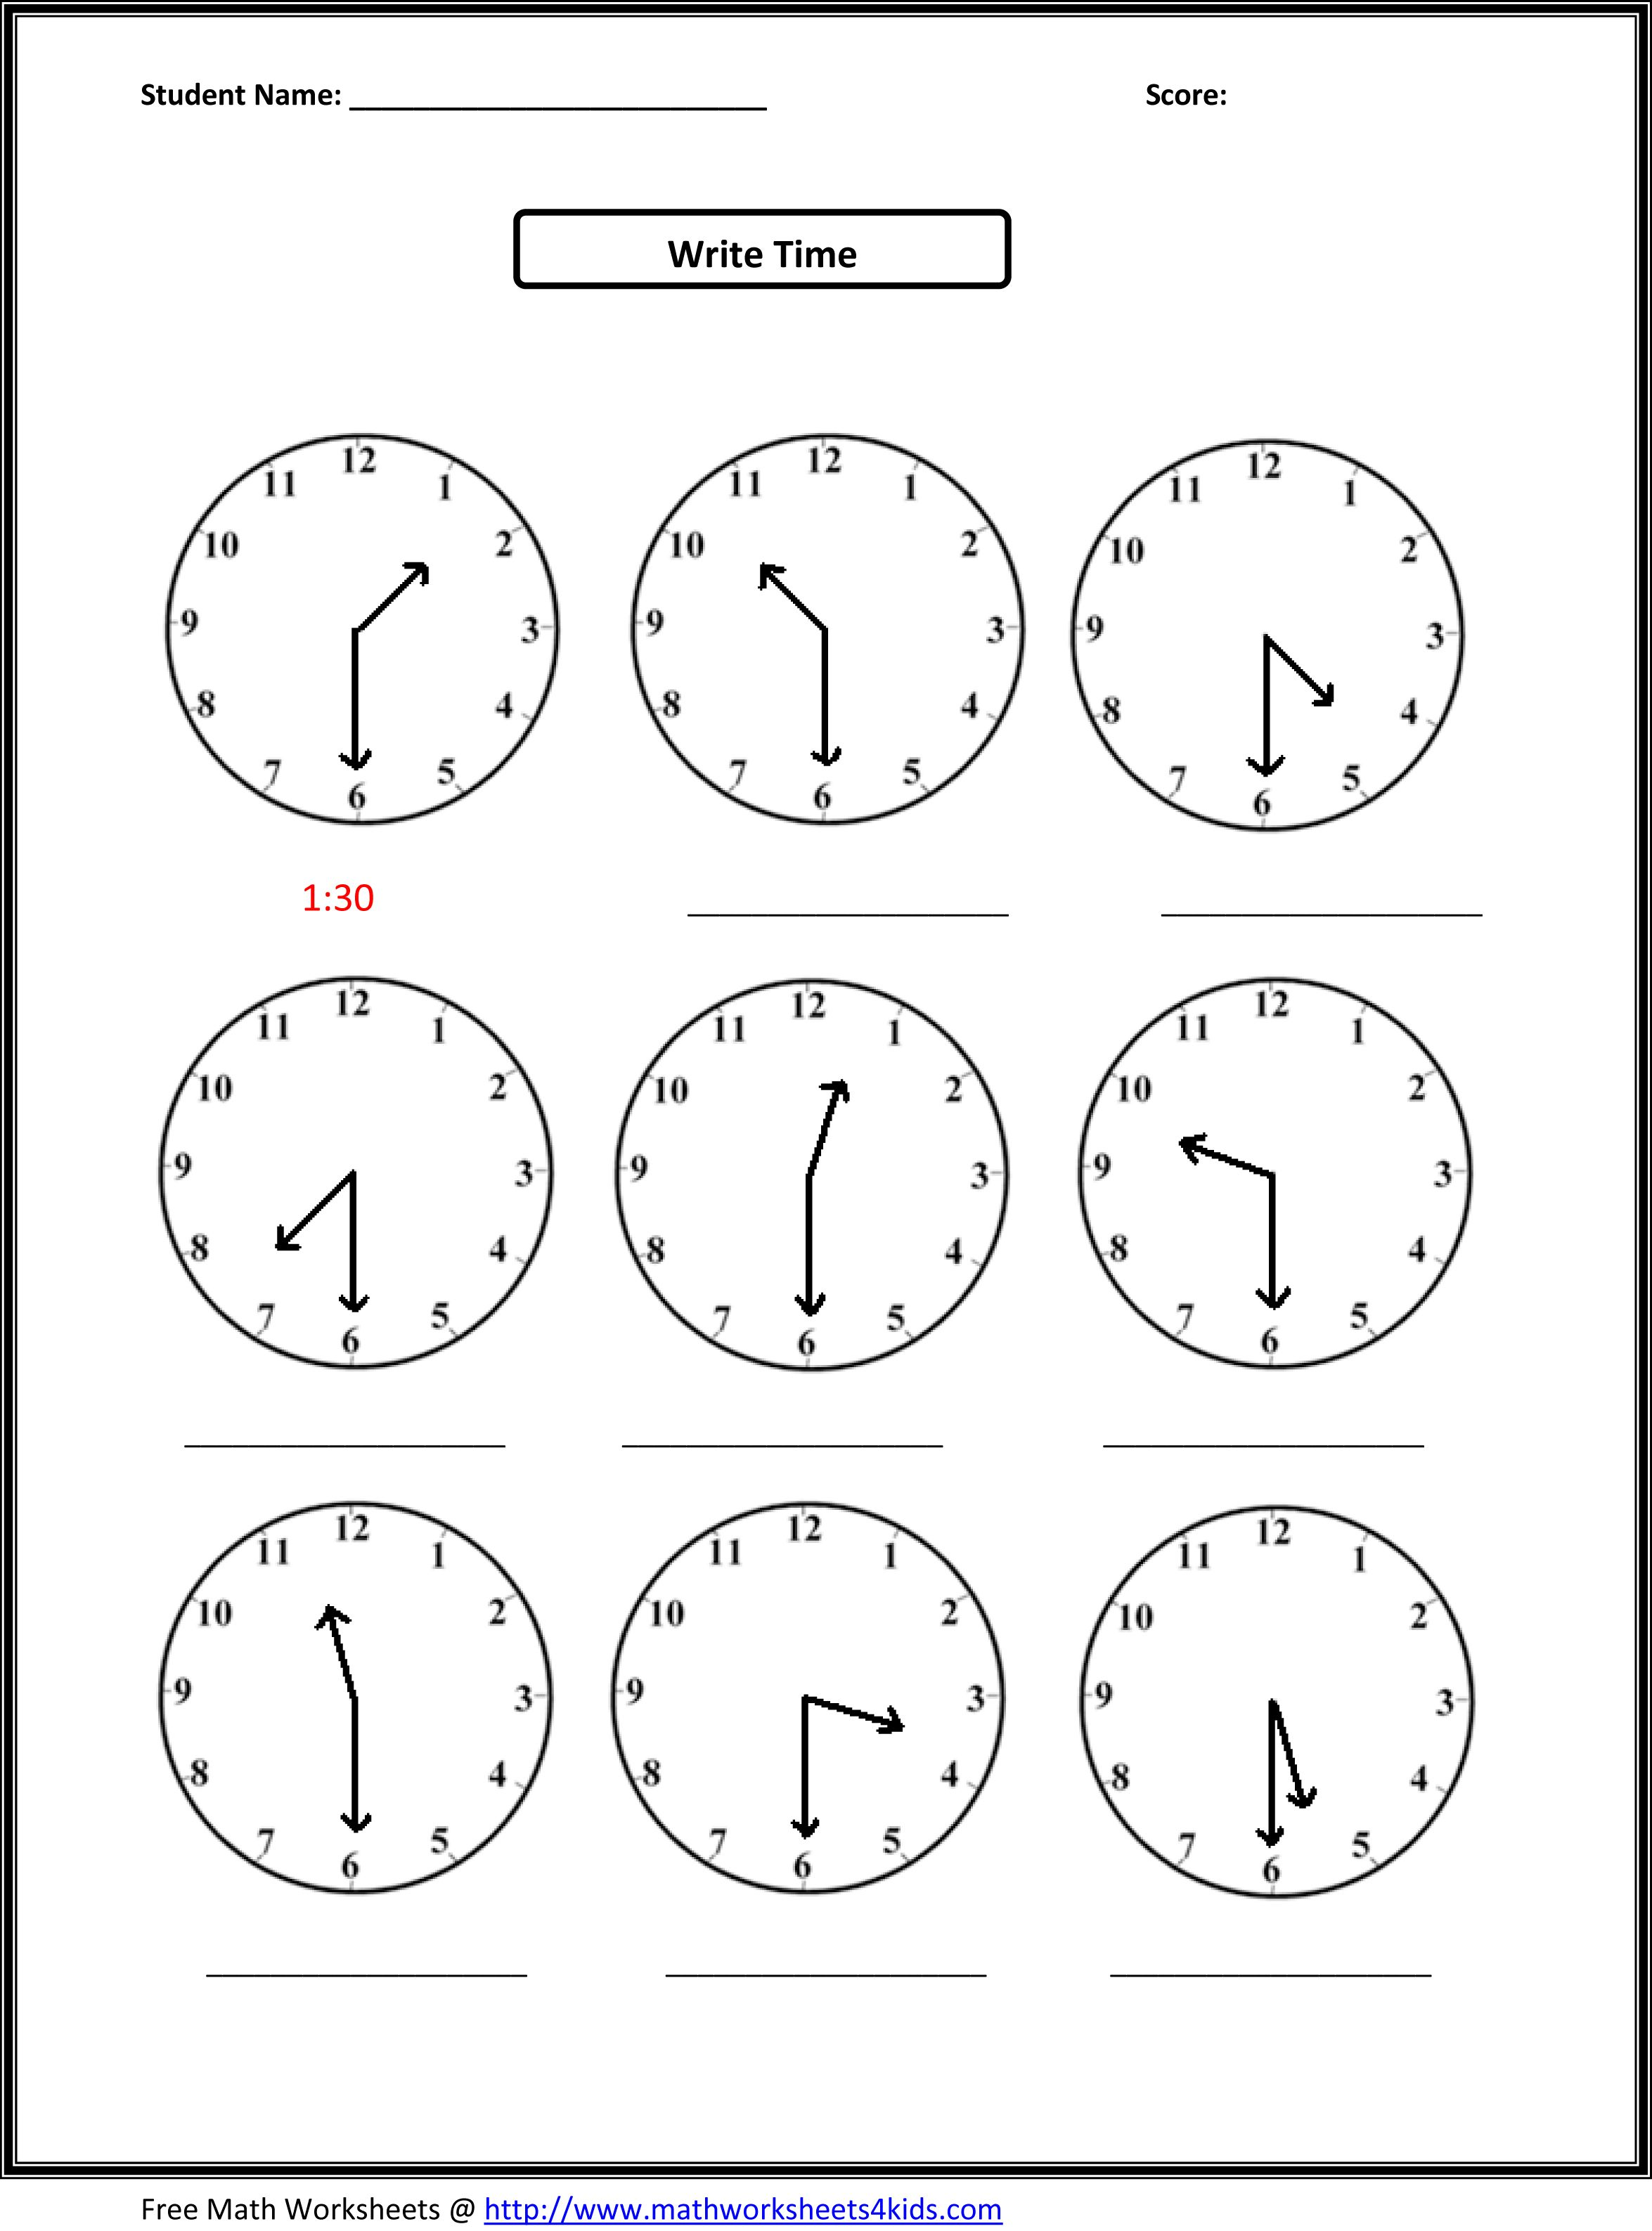 Proatmealus  Marvelous Worksheet On Time For Grade   Reocurent With Exciting Free Printable Telling Time Worksheets Nd Grade  Reocurent With Captivating Free Short A Worksheets Also St Grade Rhyming Worksheets In Addition Selena Movie Worksheet And Preschool Opposites Worksheets As Well As Plot Points Worksheet Additionally High School Math Review Worksheets From Reocurentcom With Proatmealus  Exciting Worksheet On Time For Grade   Reocurent With Captivating Free Printable Telling Time Worksheets Nd Grade  Reocurent And Marvelous Free Short A Worksheets Also St Grade Rhyming Worksheets In Addition Selena Movie Worksheet From Reocurentcom